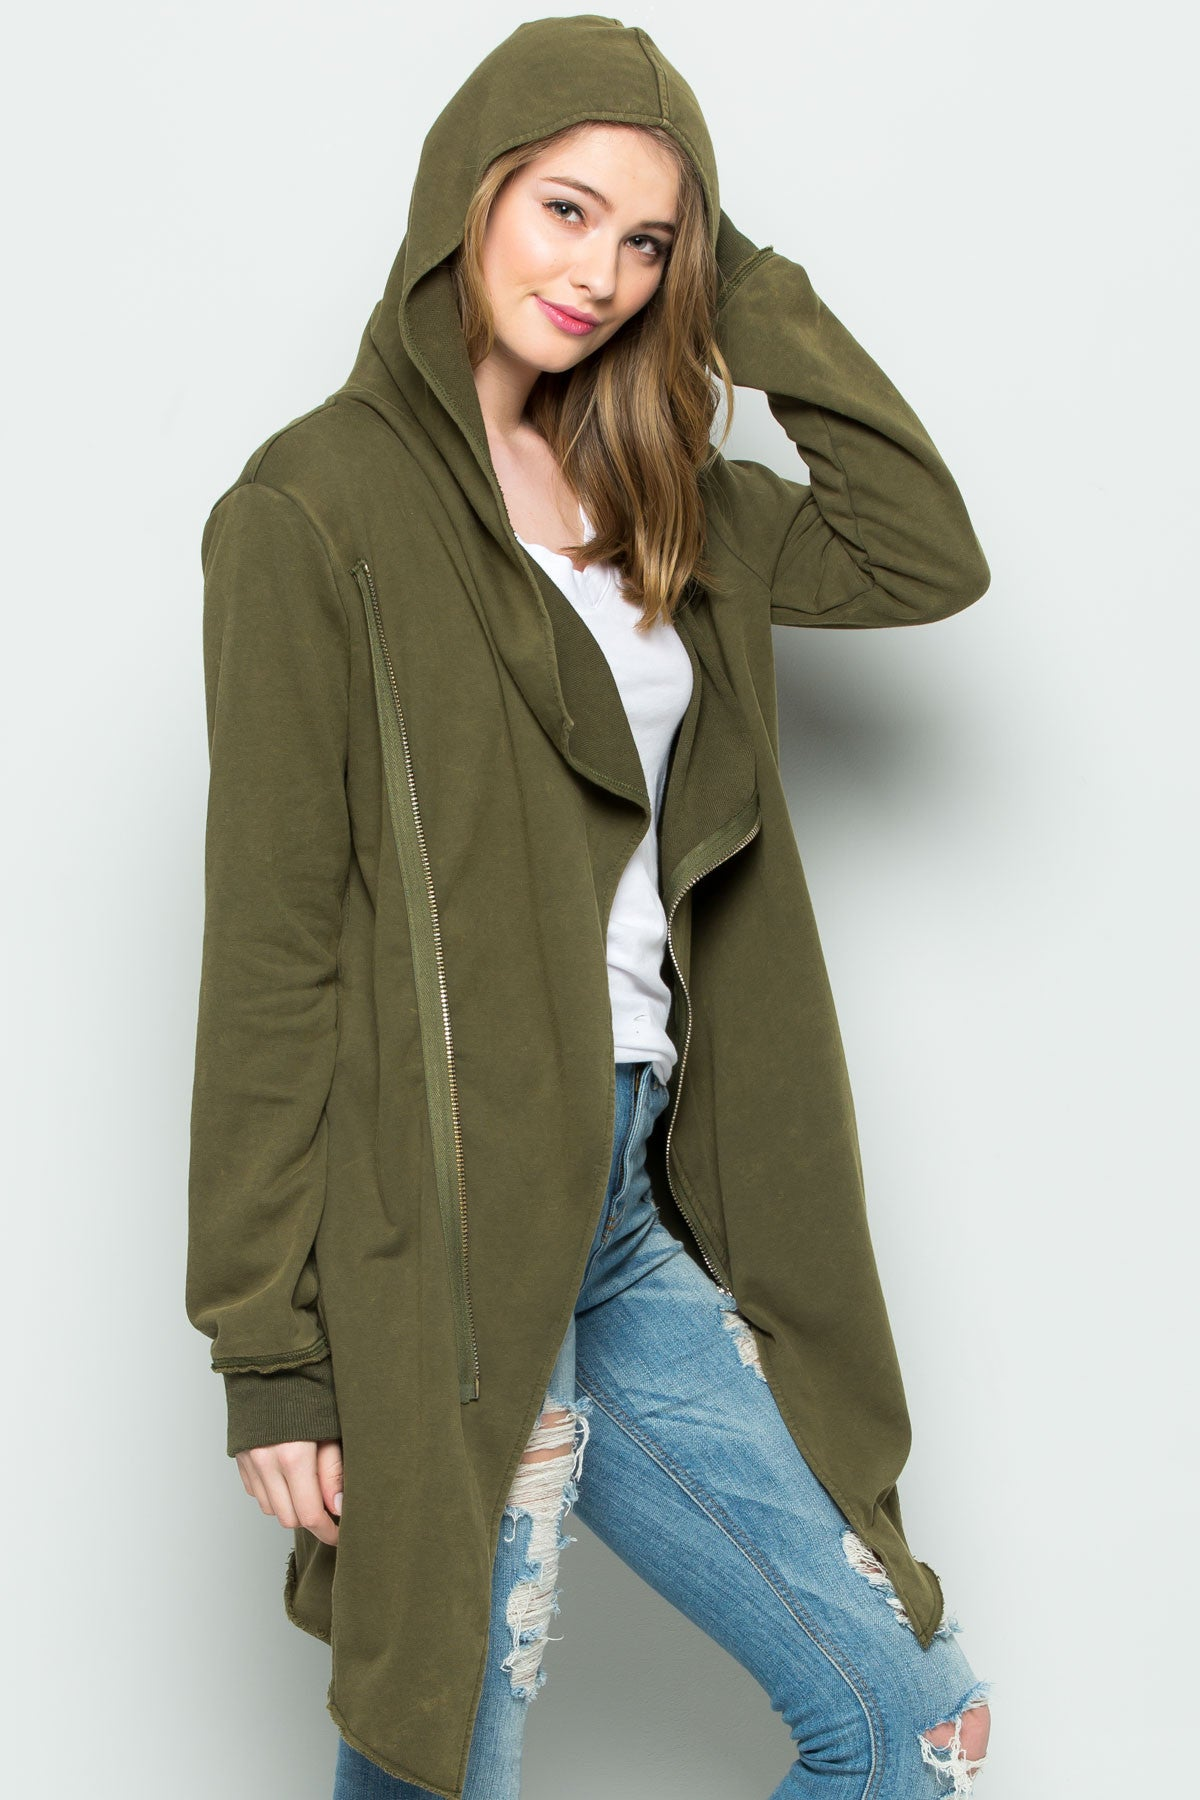 Hooded Asymmetric Zip Up Acid Wash Jacket in Military Green - Jacket - My Yuccie - 8